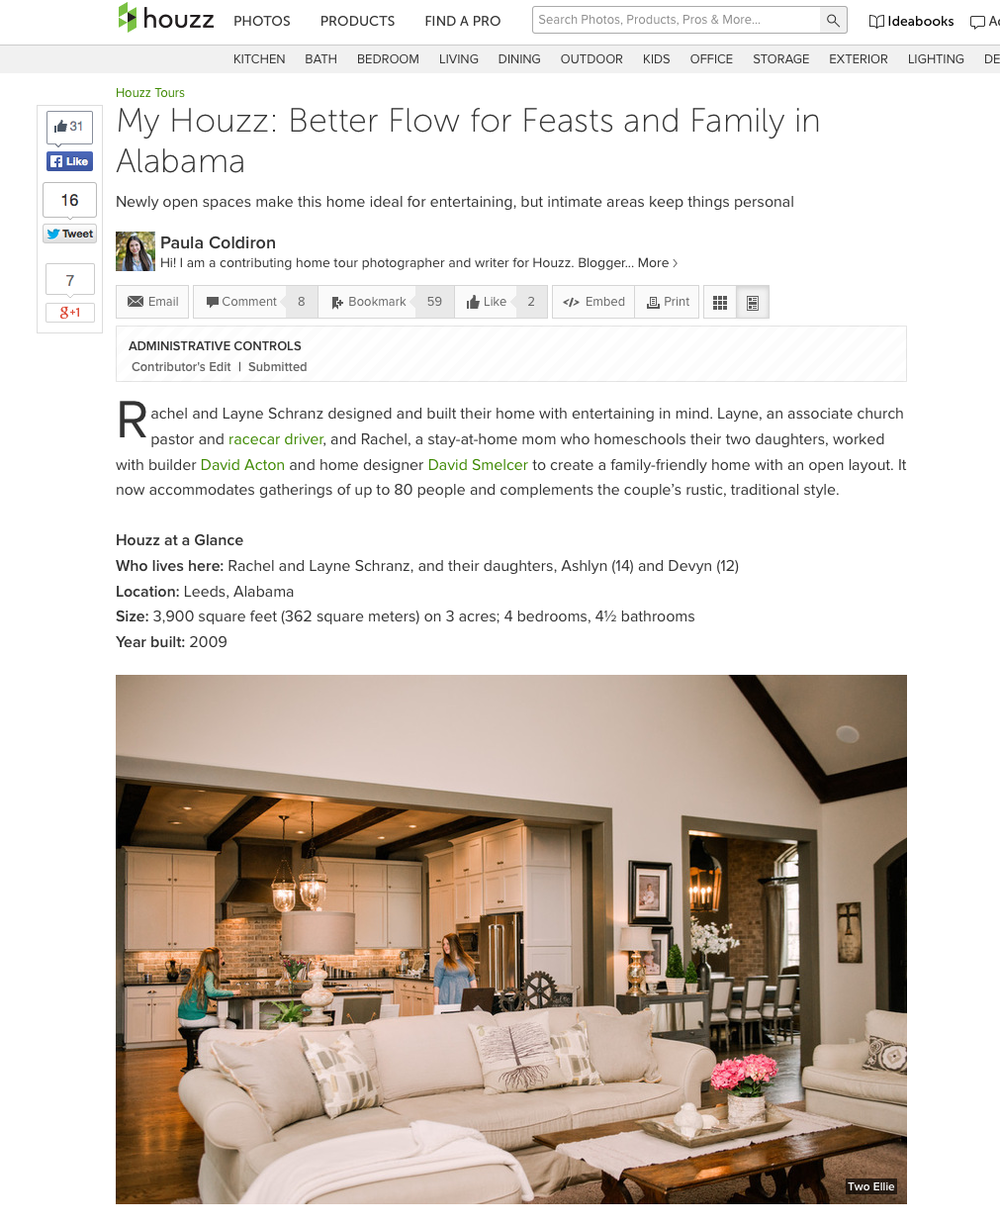 TWOELLIE.HOUZZ.MARCH.png